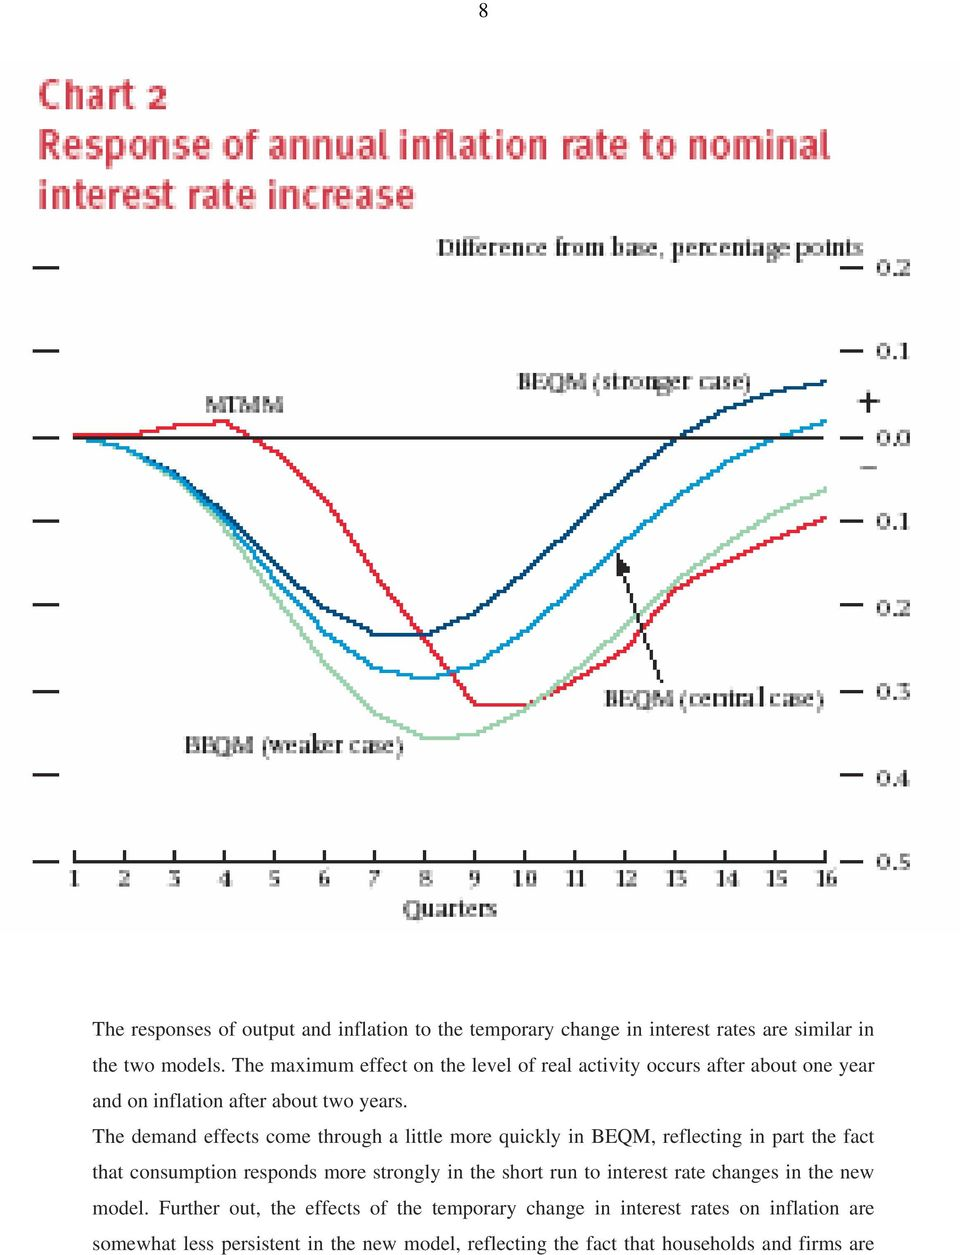 The demand effects come through a little more quickly in BEQM, reflecting in part the fact that consumption responds more strongly in the short run